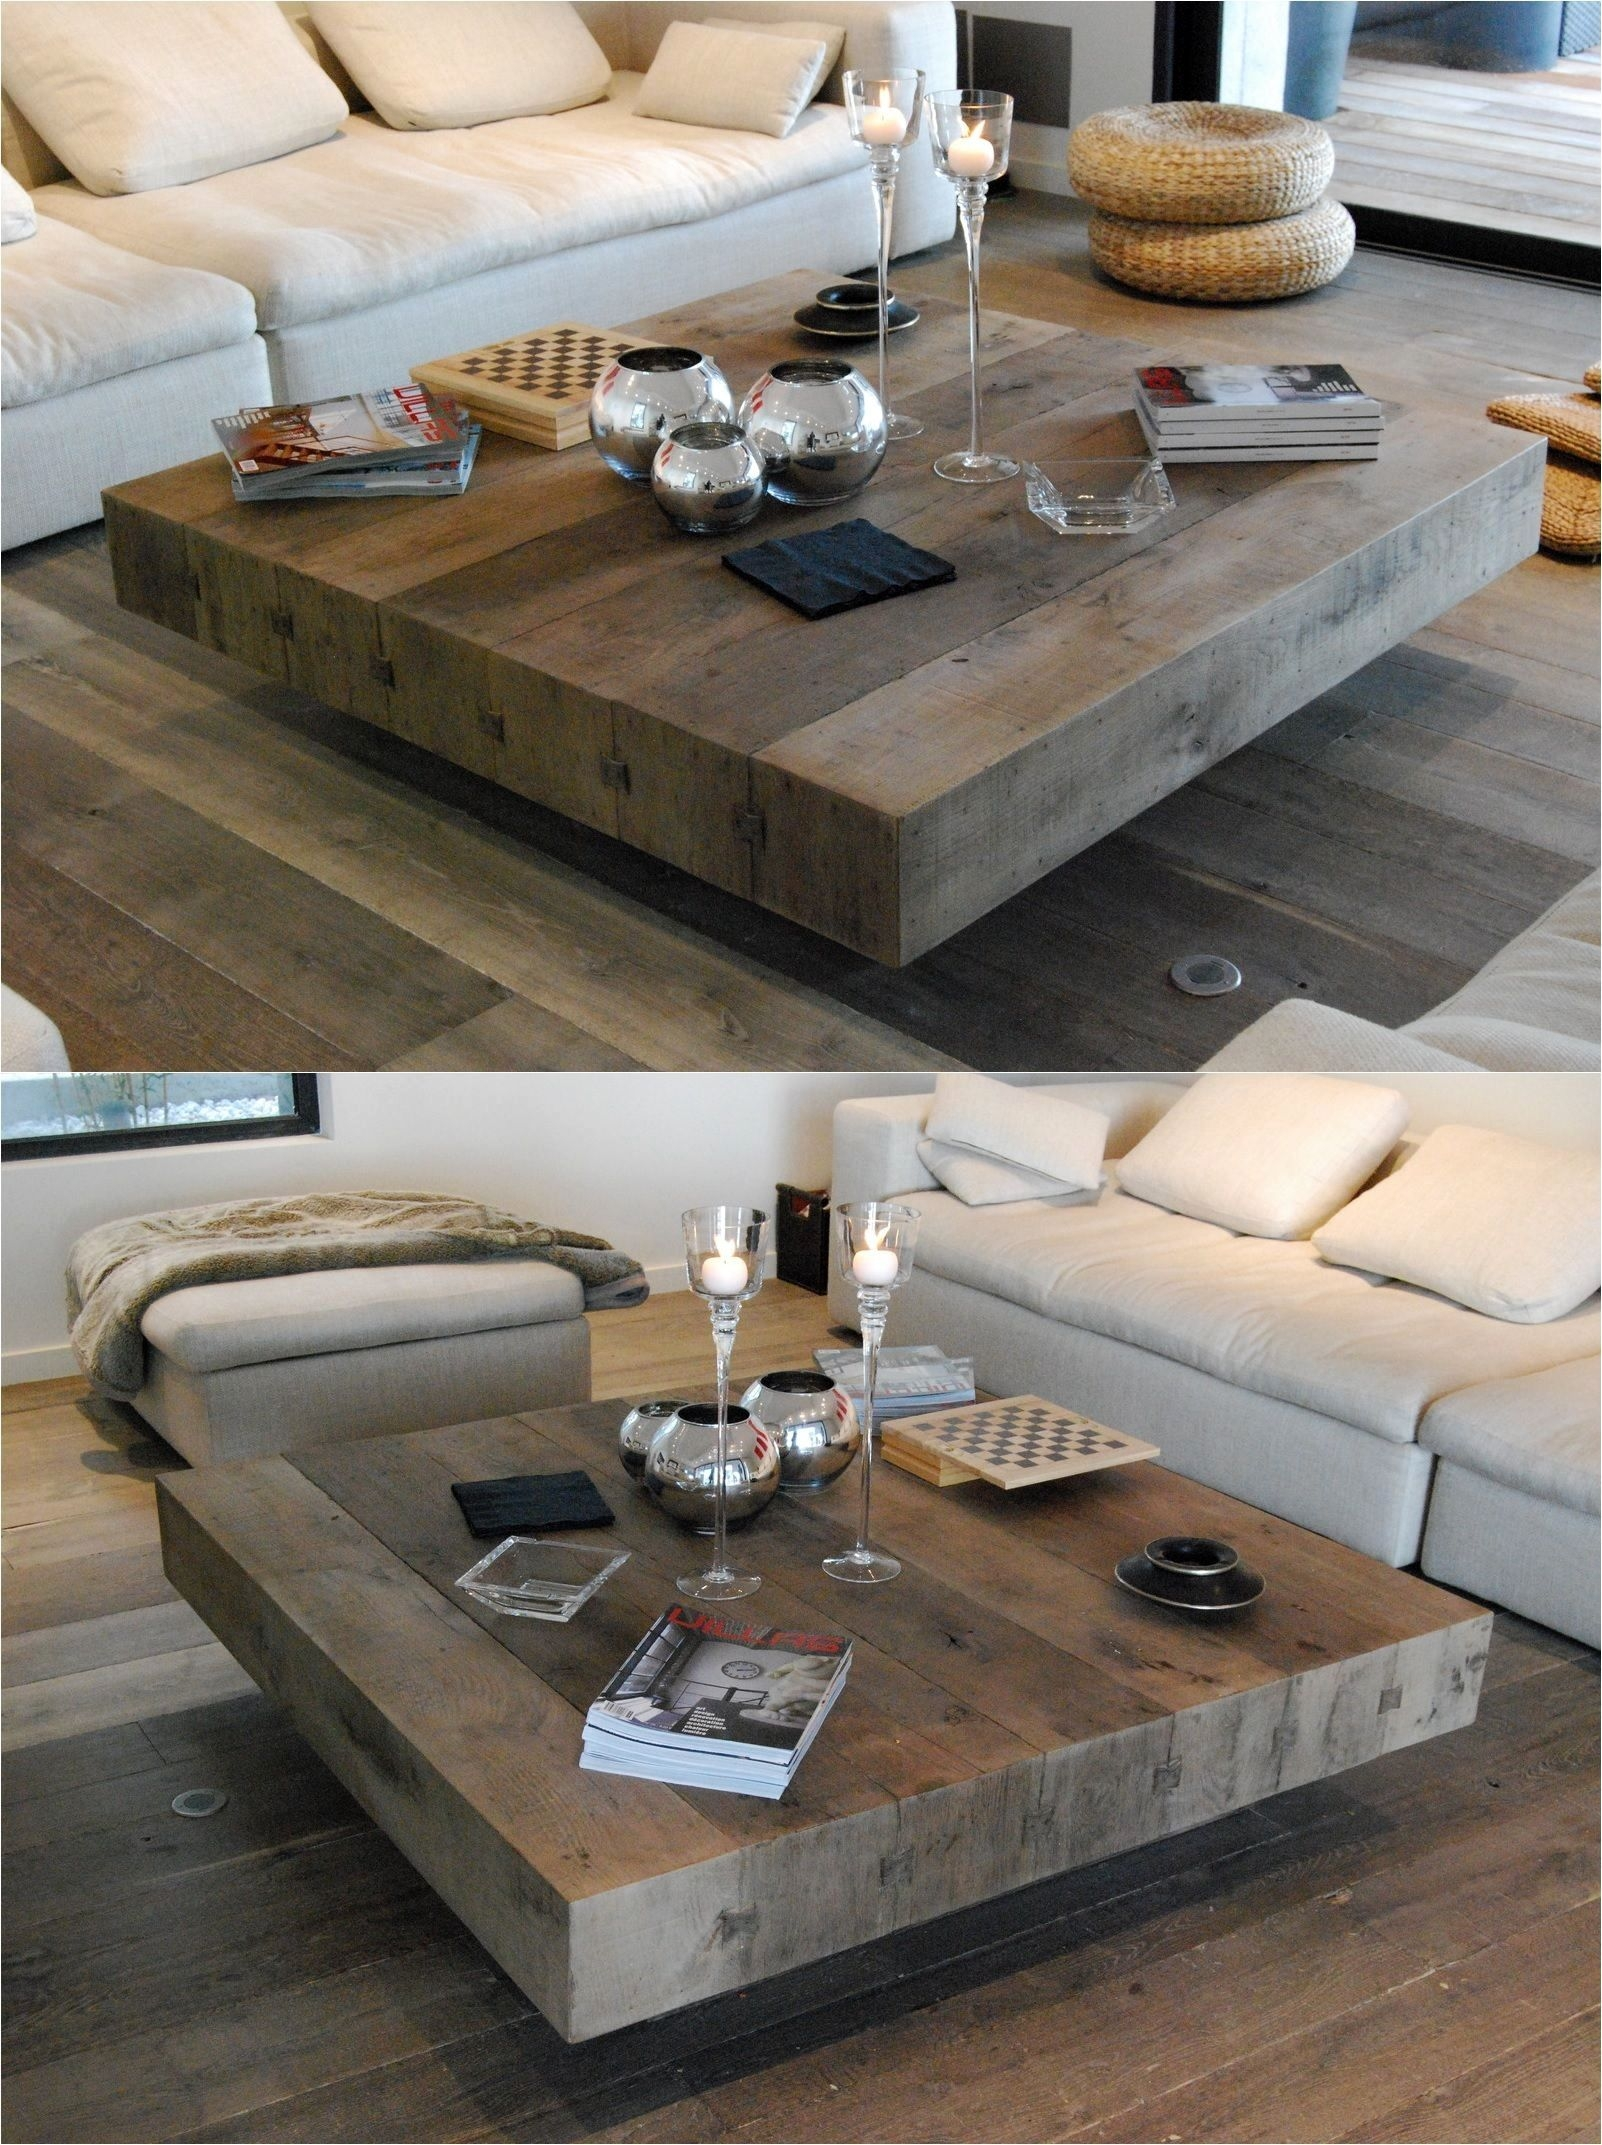 Exquisite Large Oak Coffee Table On Exquisite Easy Diy Coffee Table On Large Oak Coffee Table